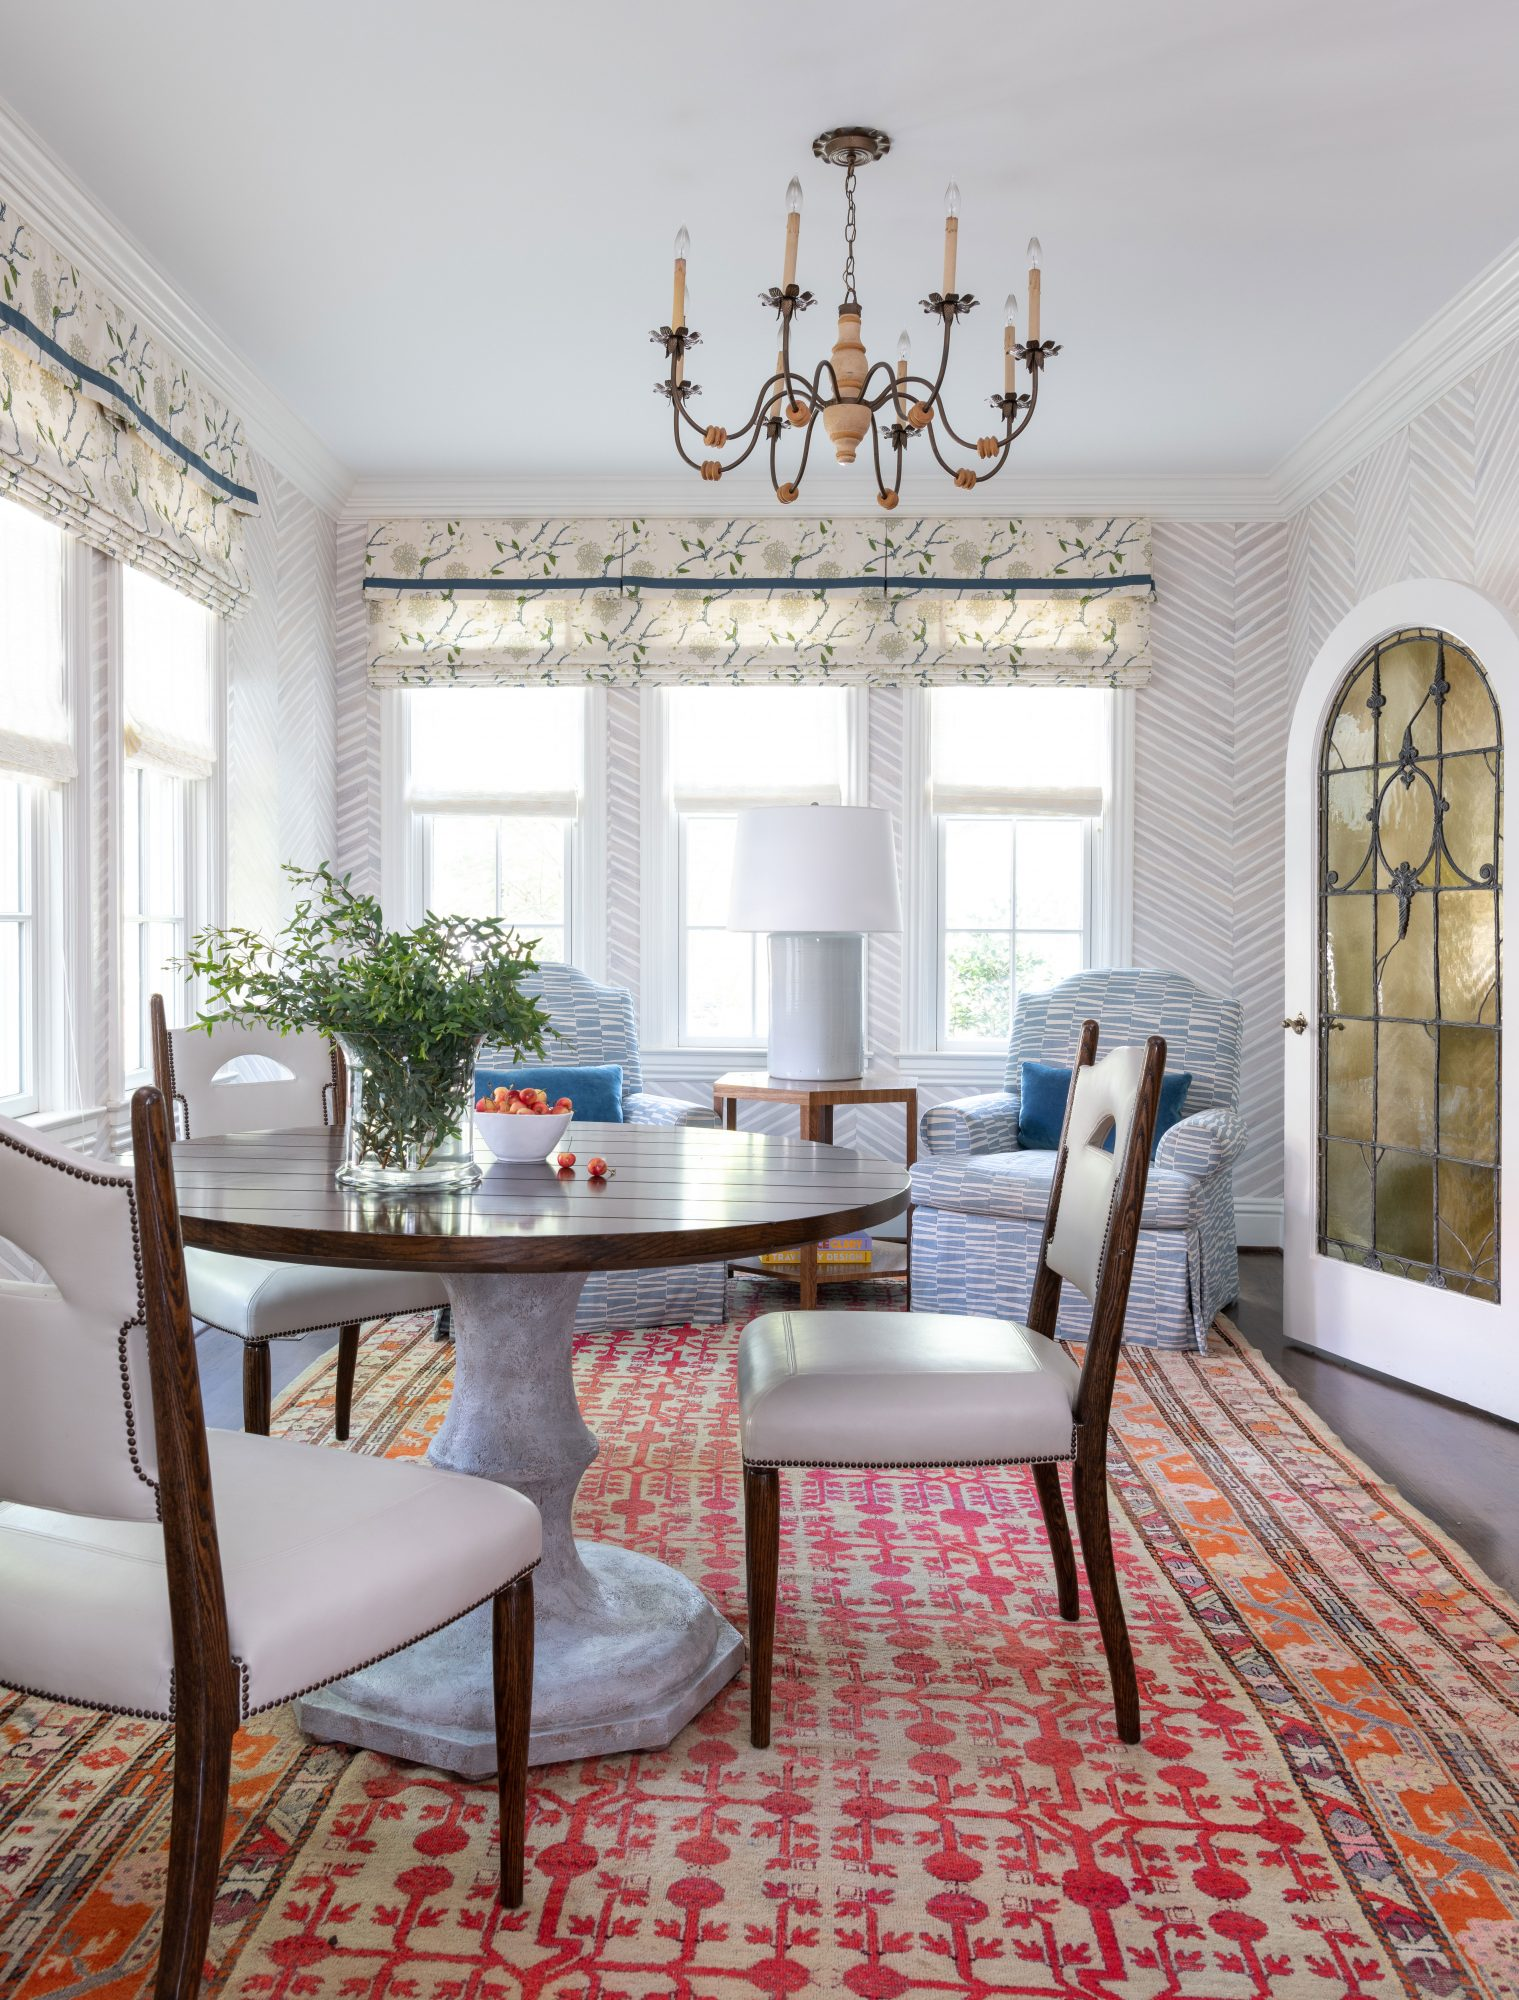 Sitting Area with Round Table and Three Chairs